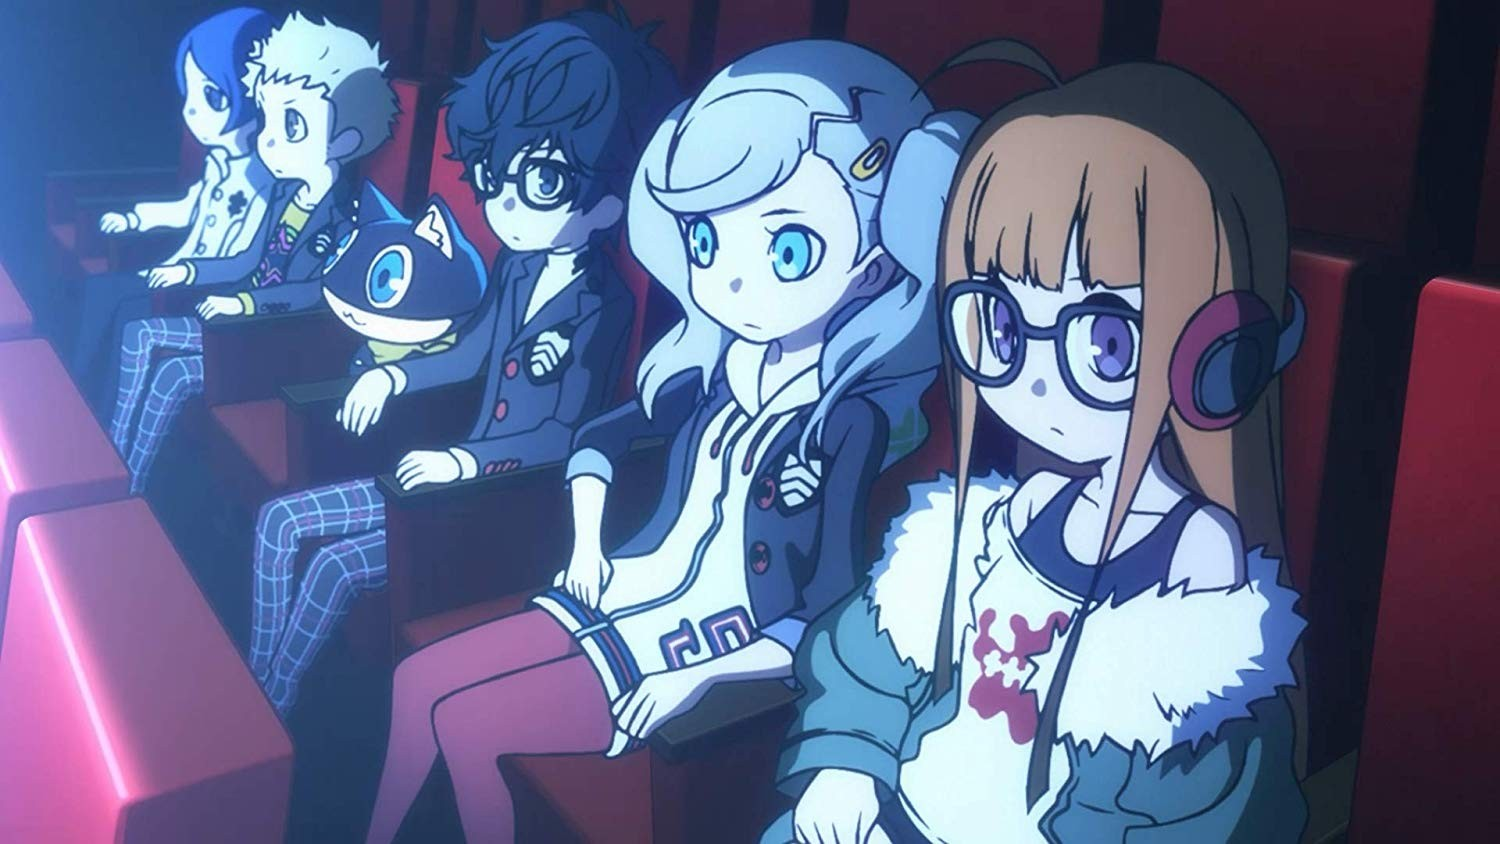 Persona Q2: New Cinema Labyrinth - Atlus Releases a Free Theme!